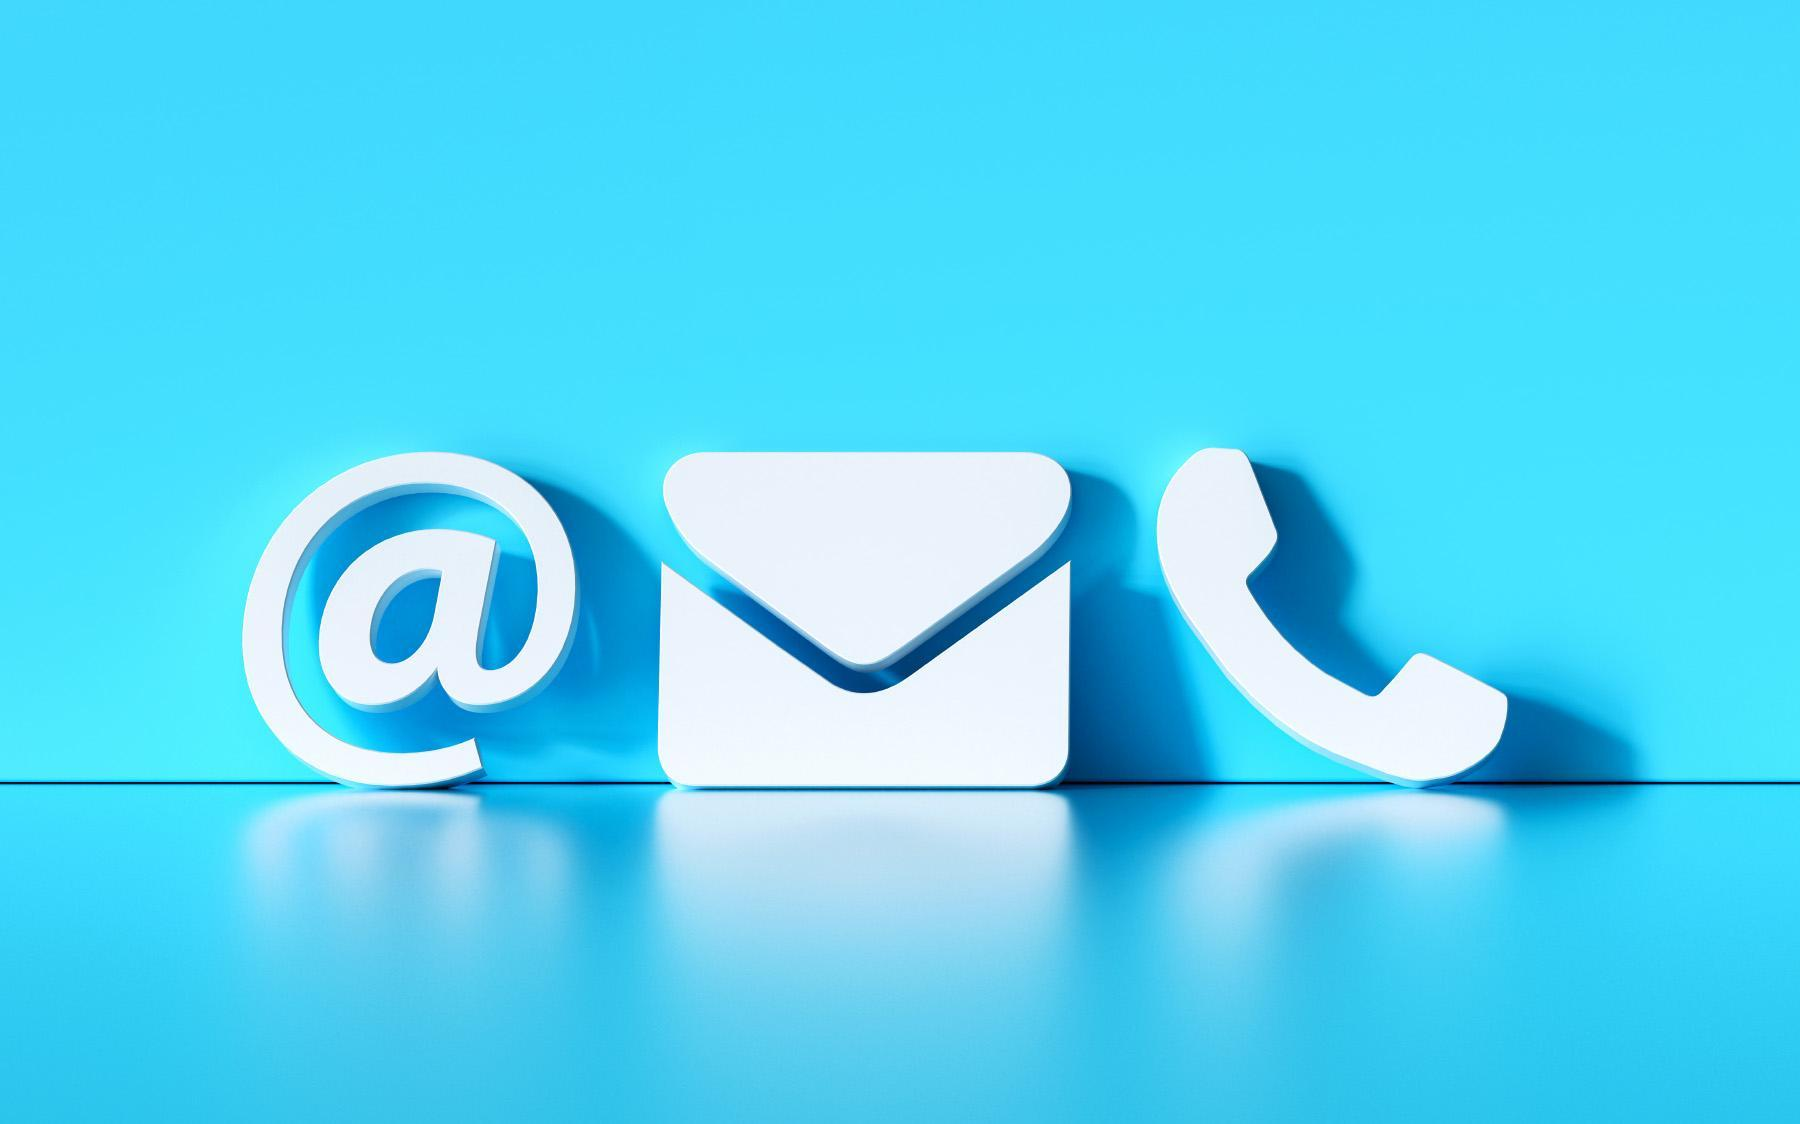 E-mail, mail, and phone icons against a blue background